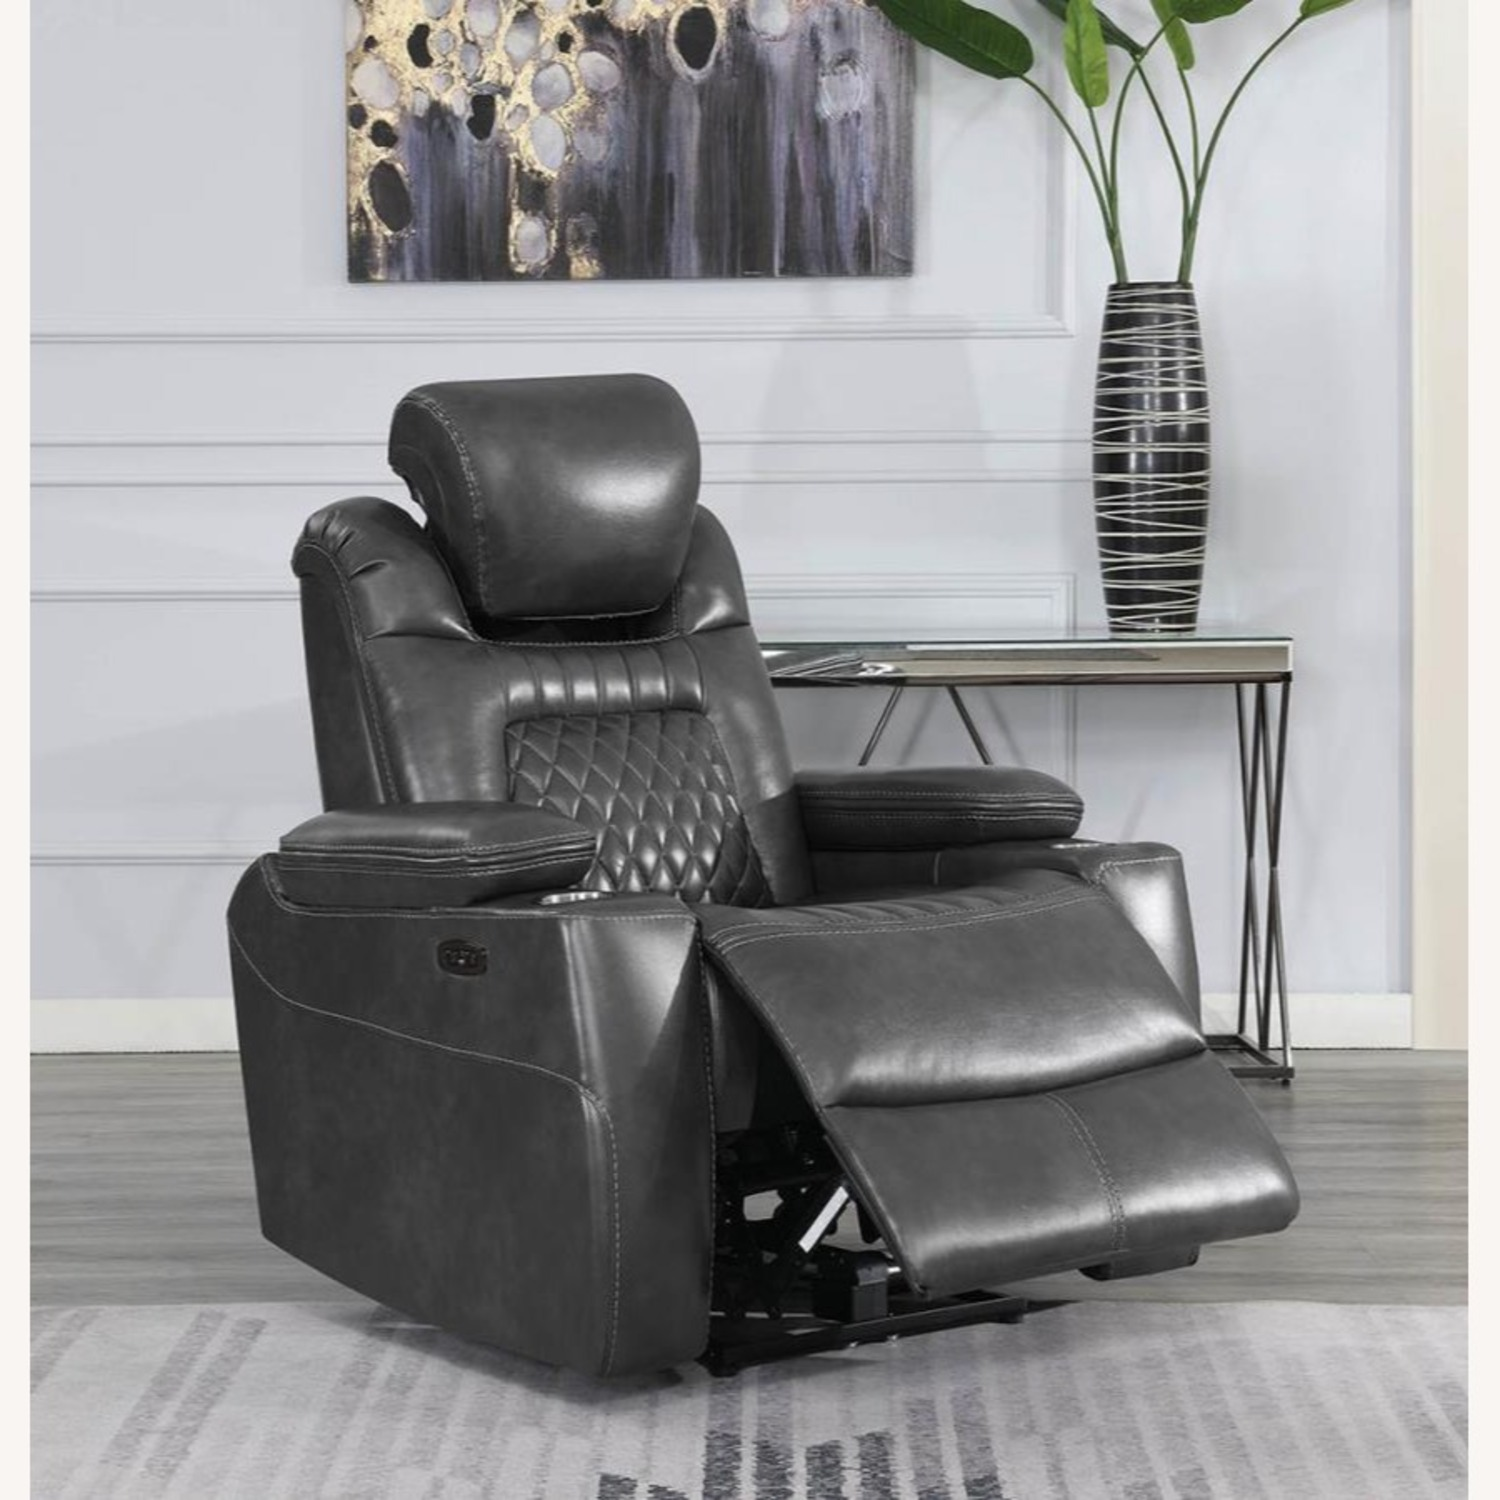 Power Recliner In Charcoal Microfiber Upholstery - image-6